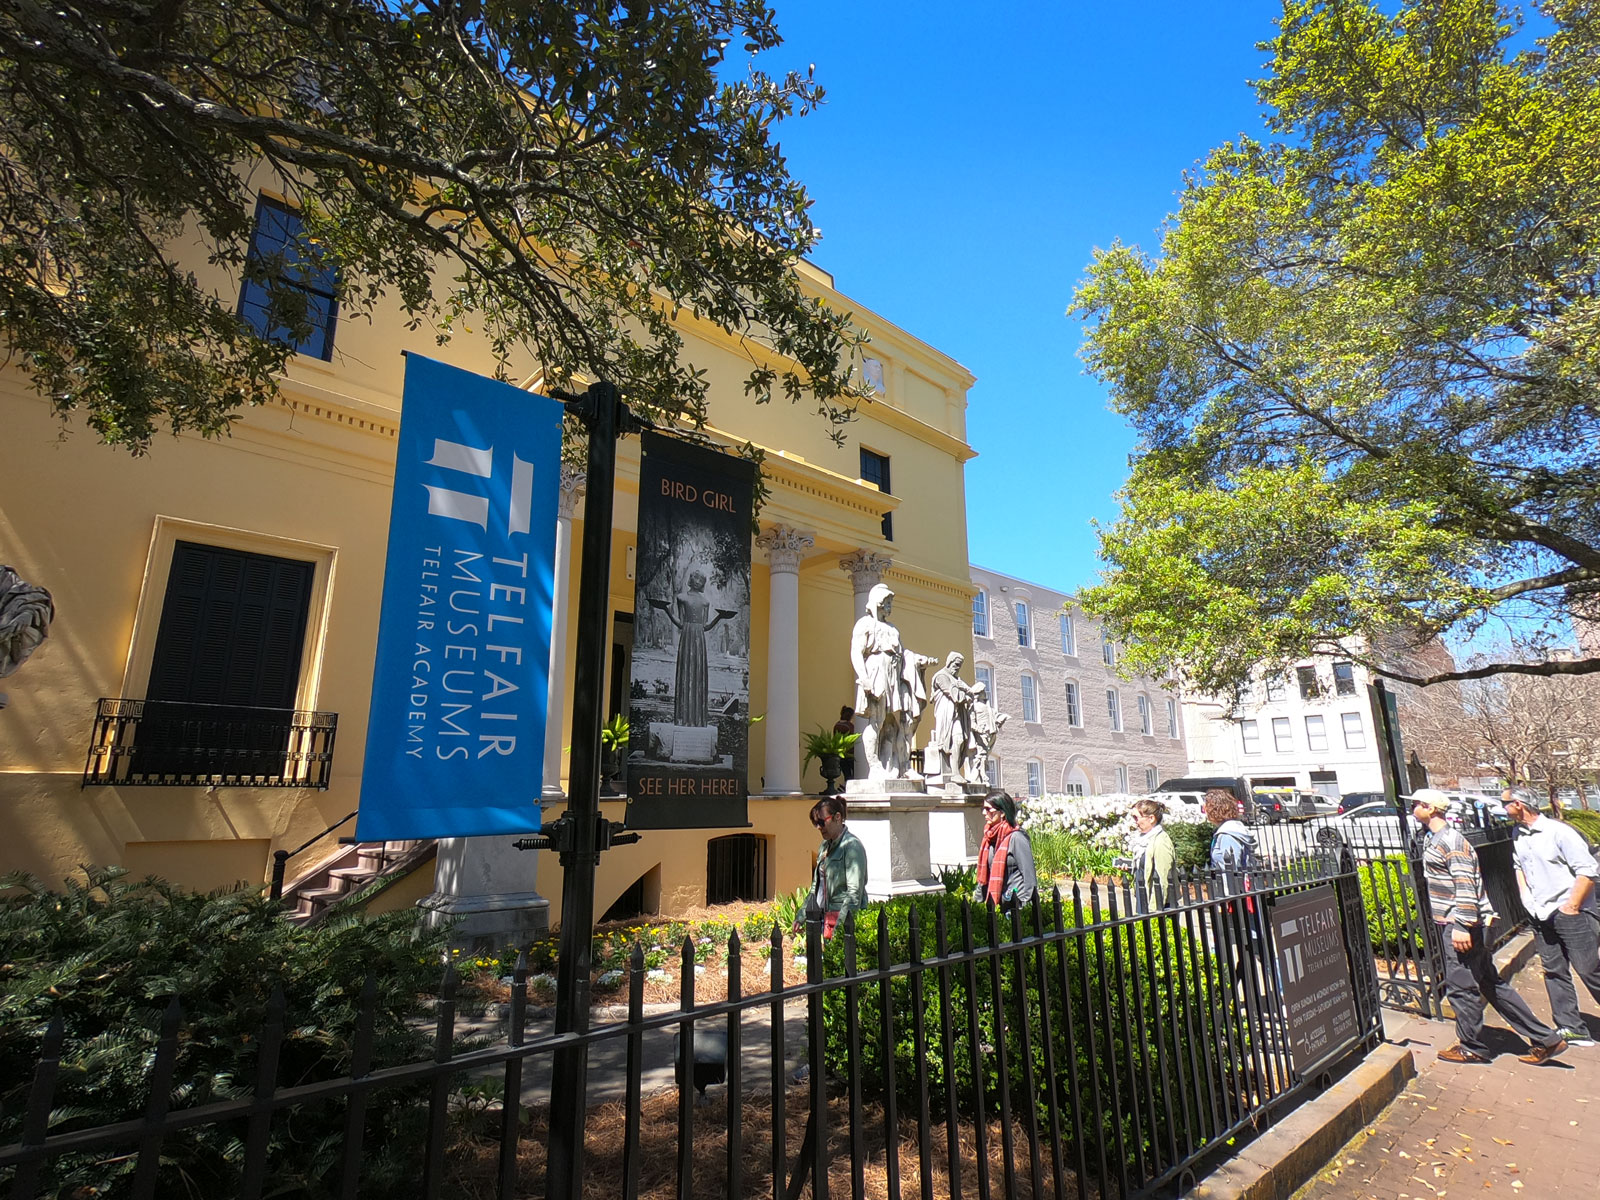 Exterior of Telfair Academy mansion in Savannah, Georgia